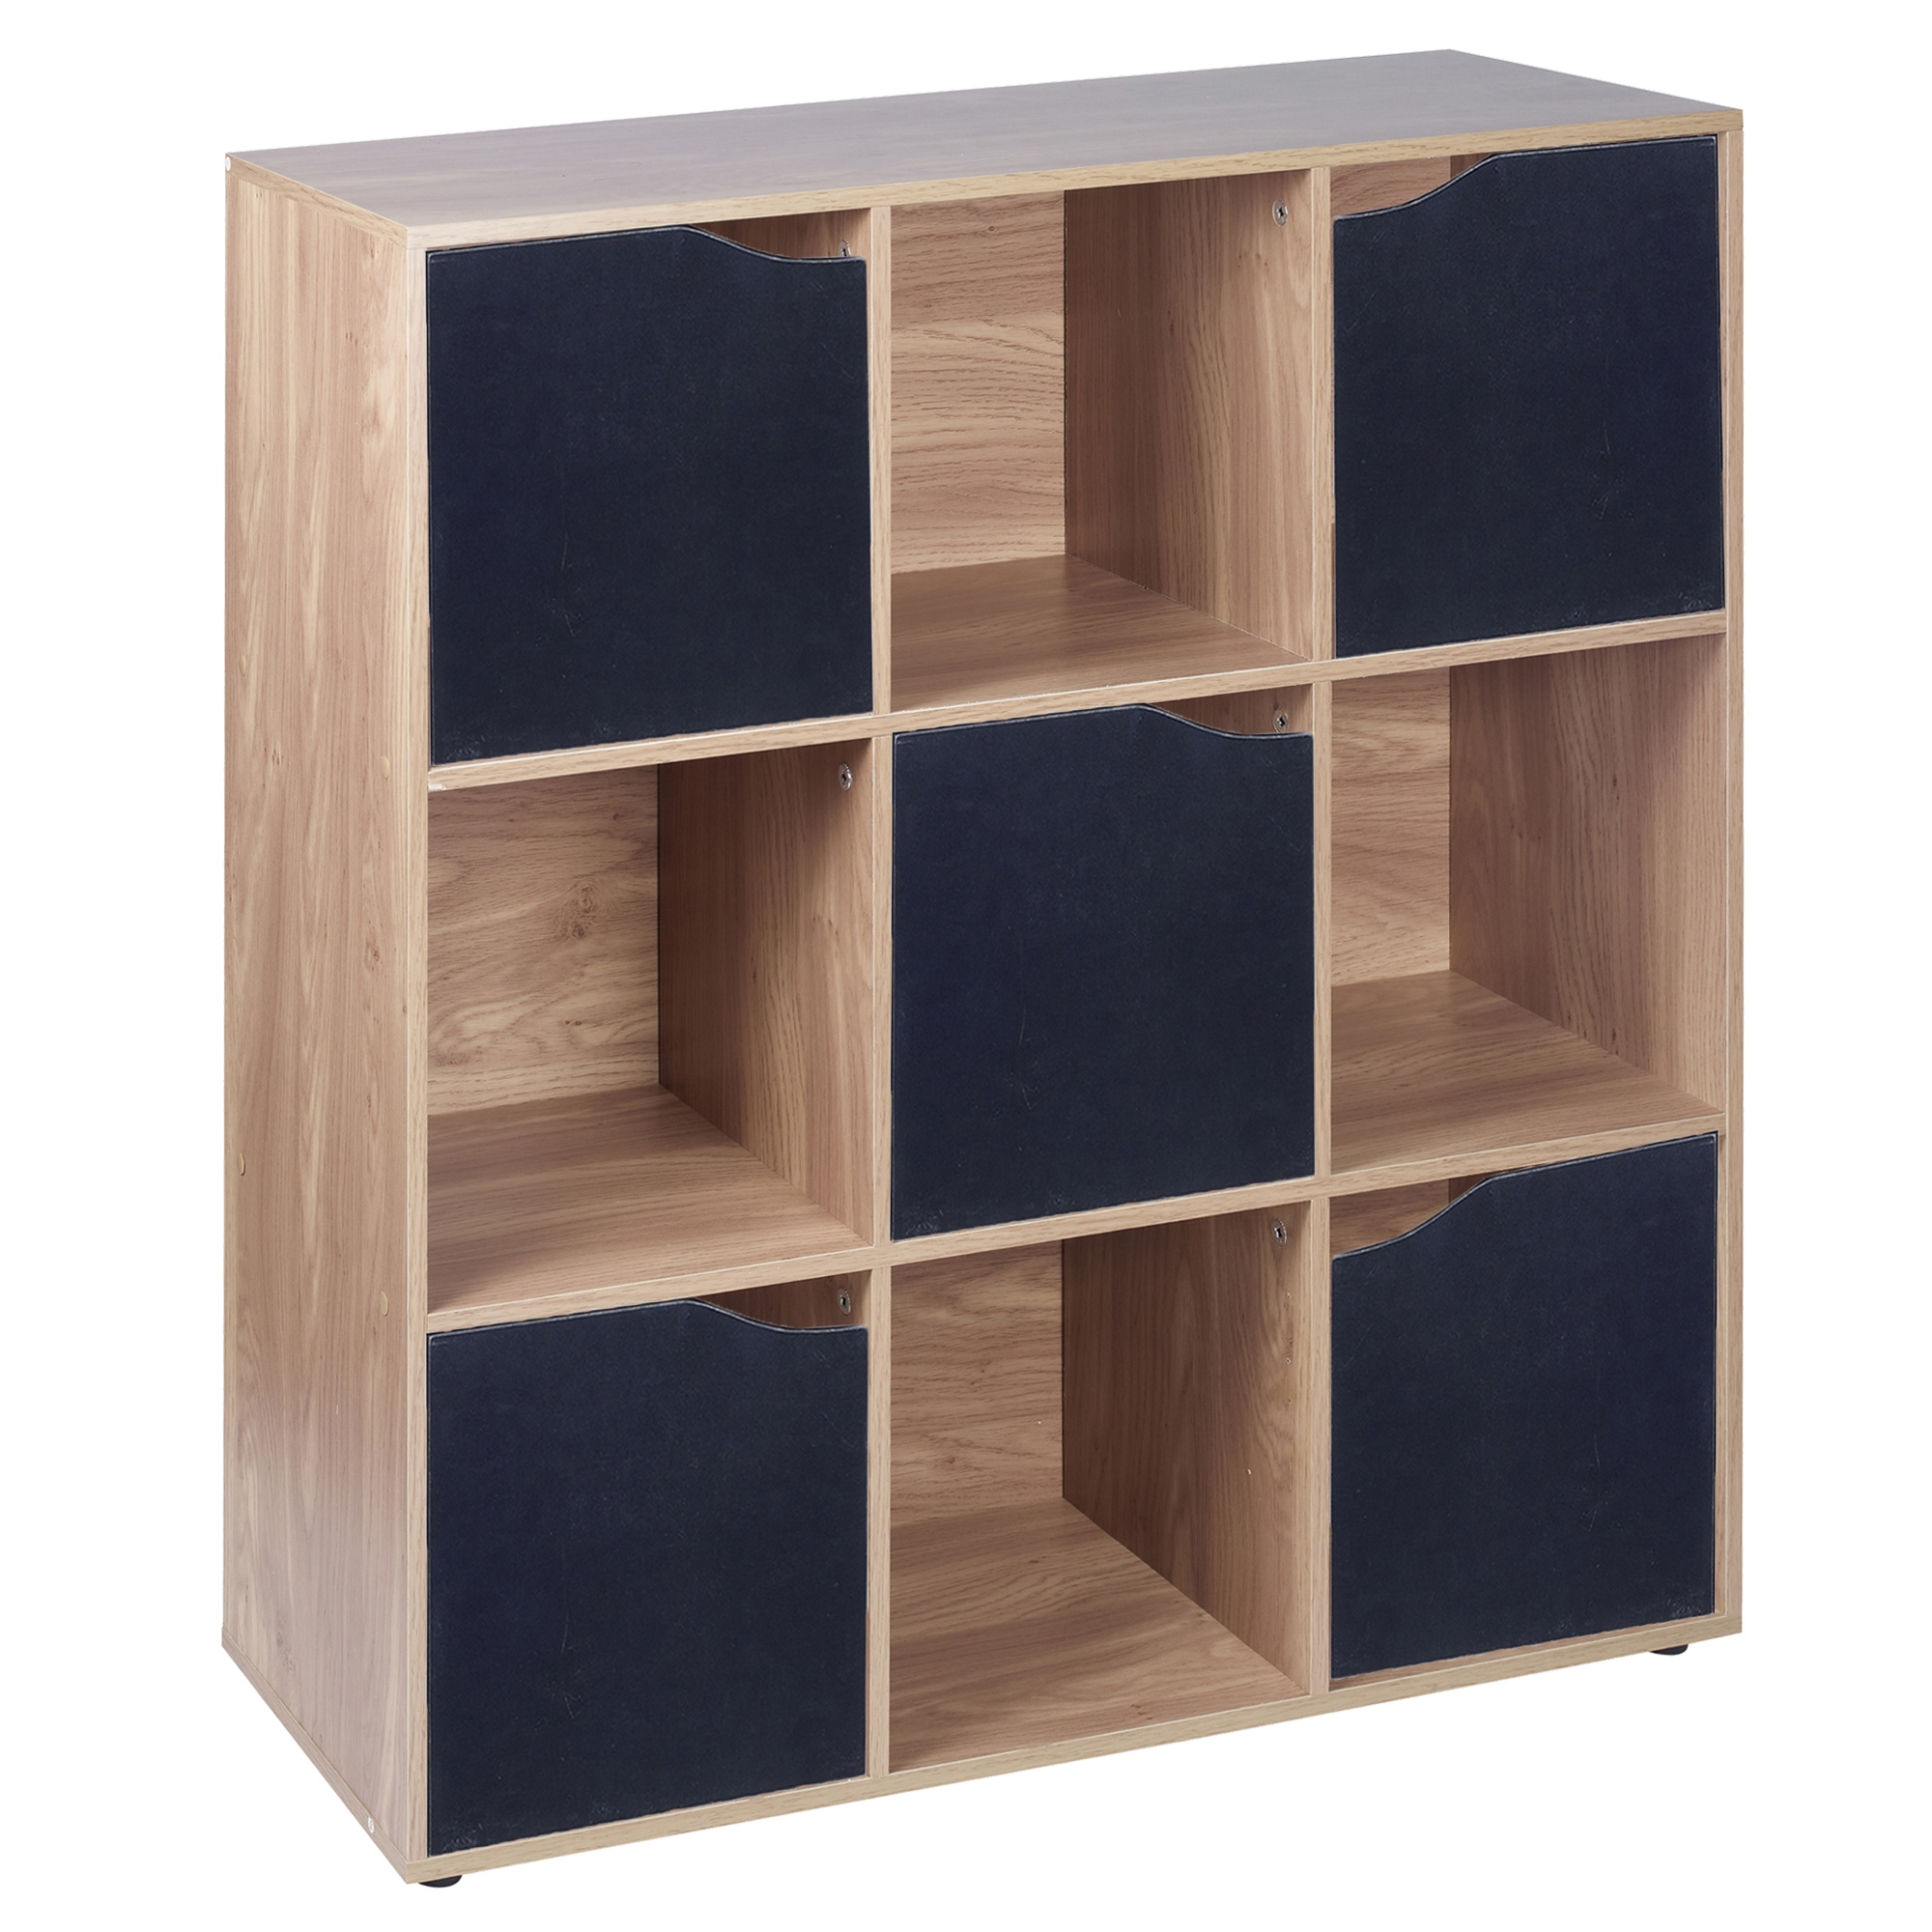 Cube oak wooden bookcase shelving display modular